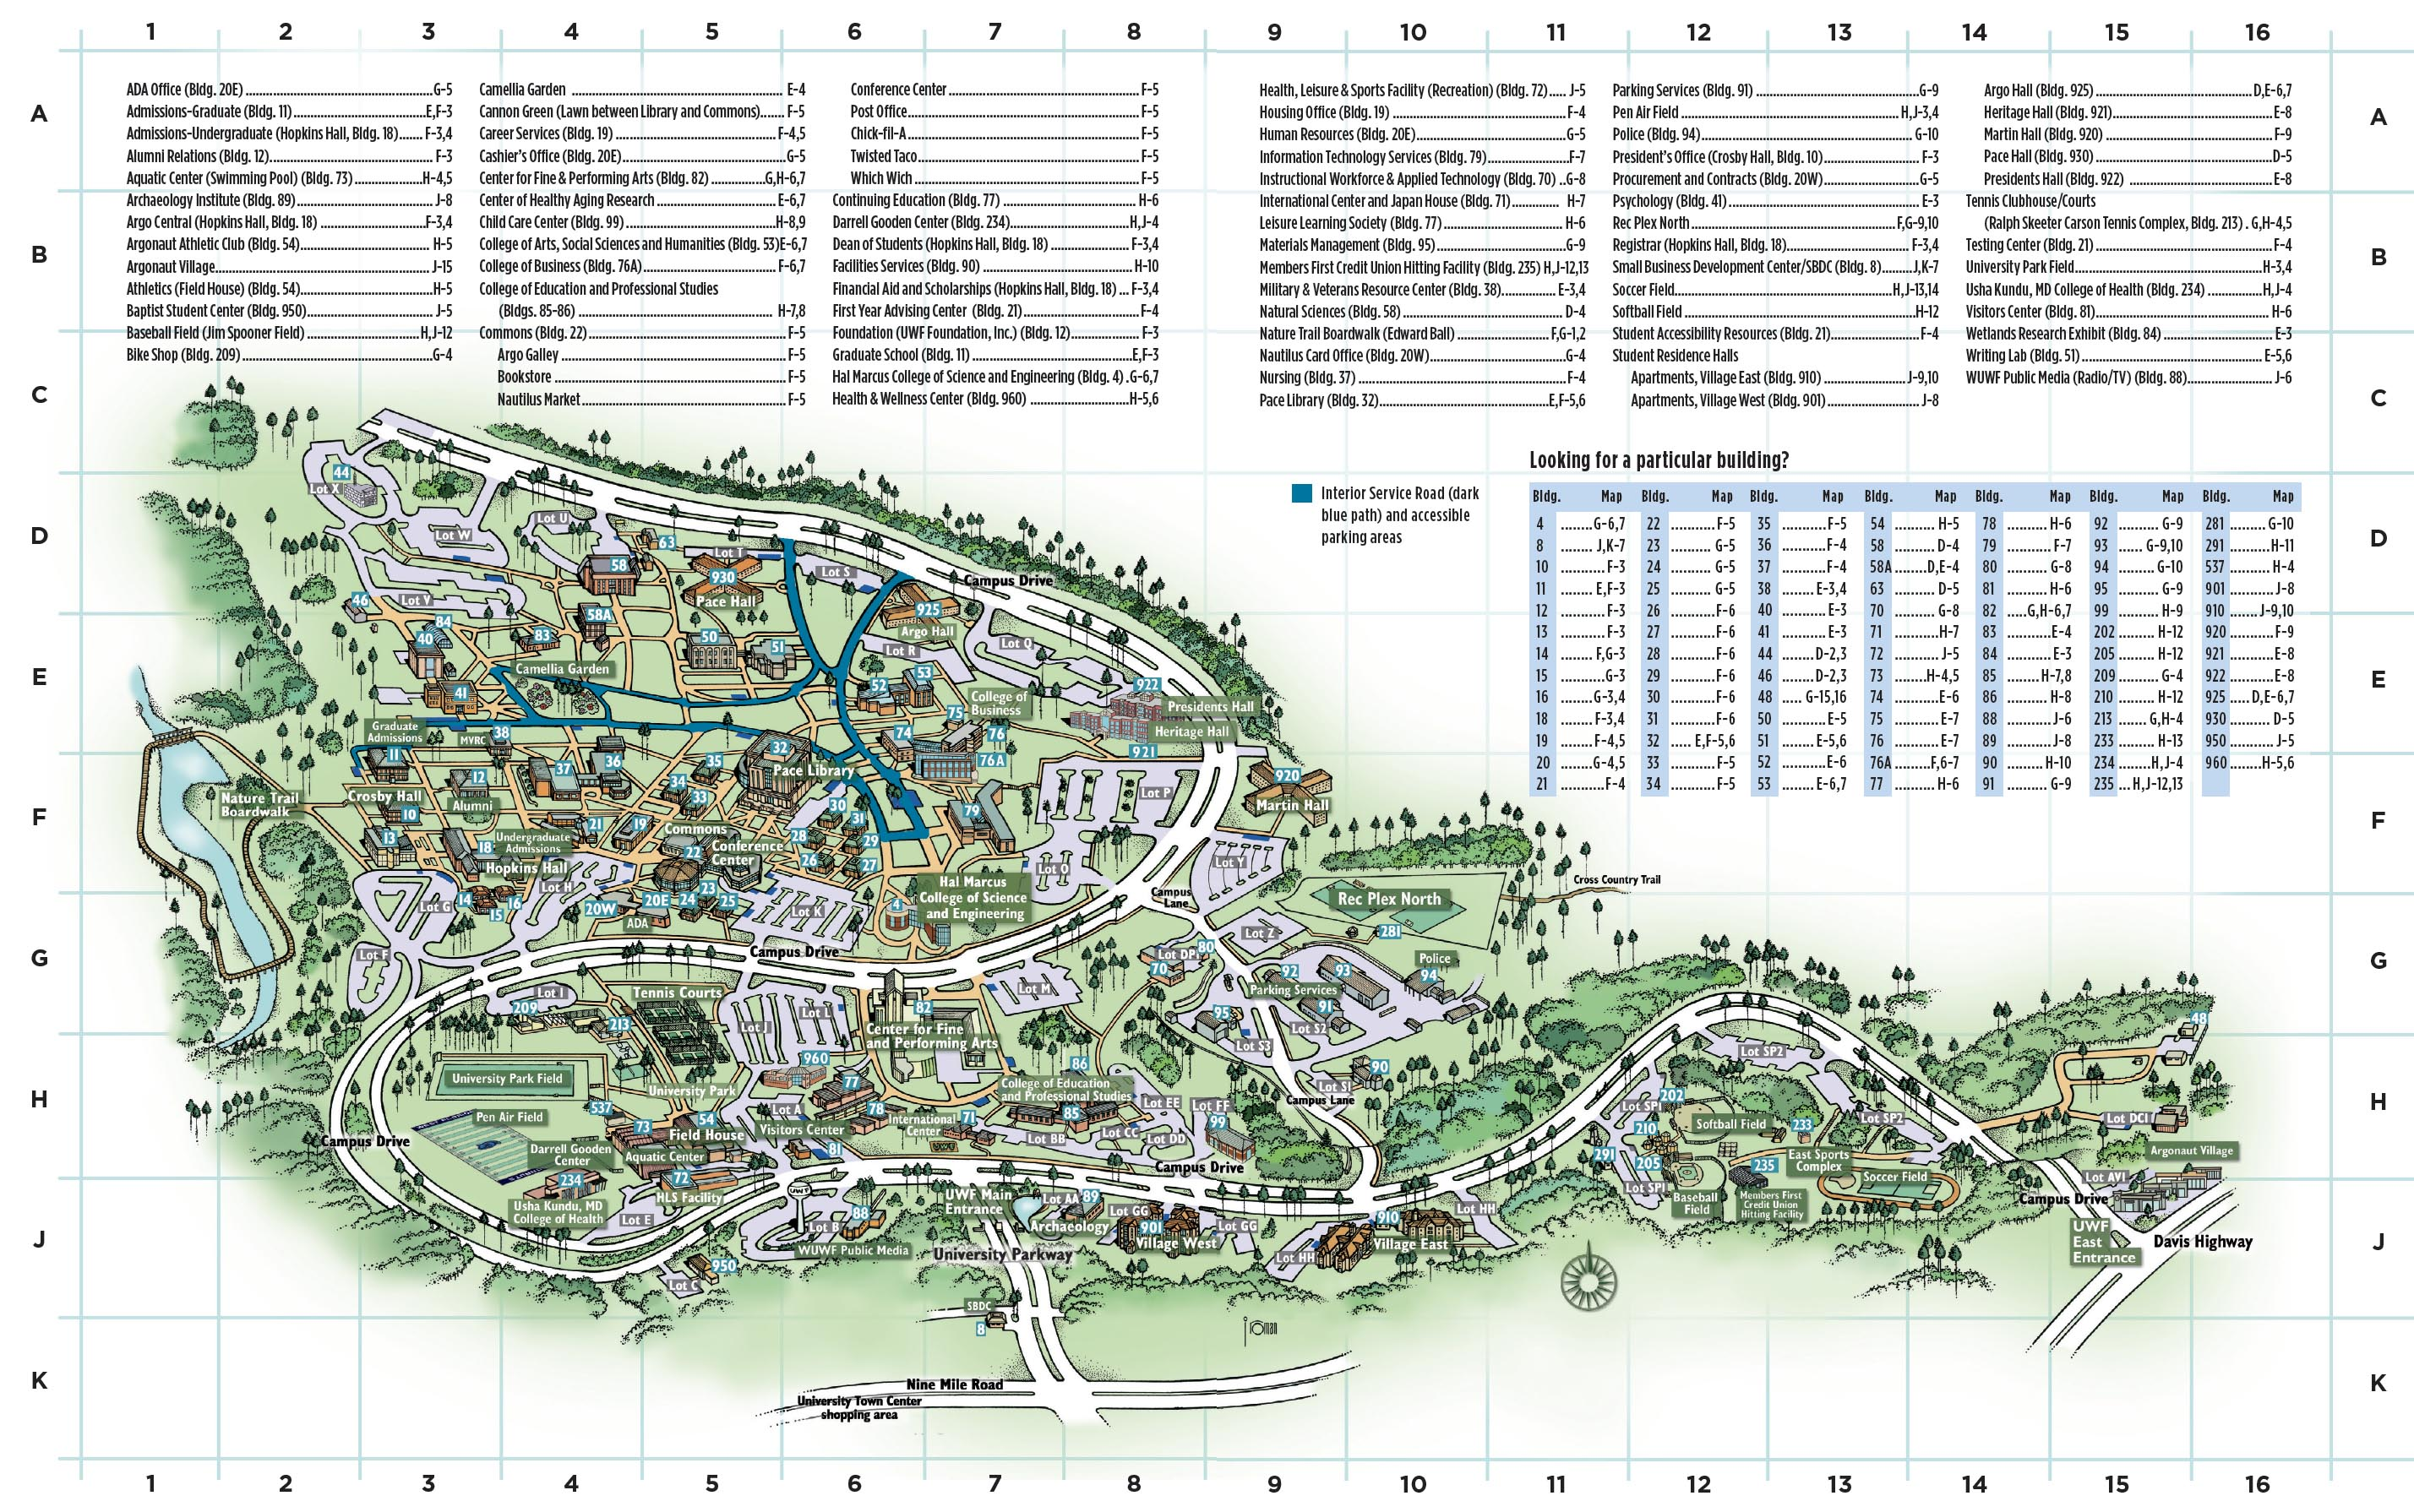 University Of West Florida Map Campus Map | University of West Florida Visitor's Guide